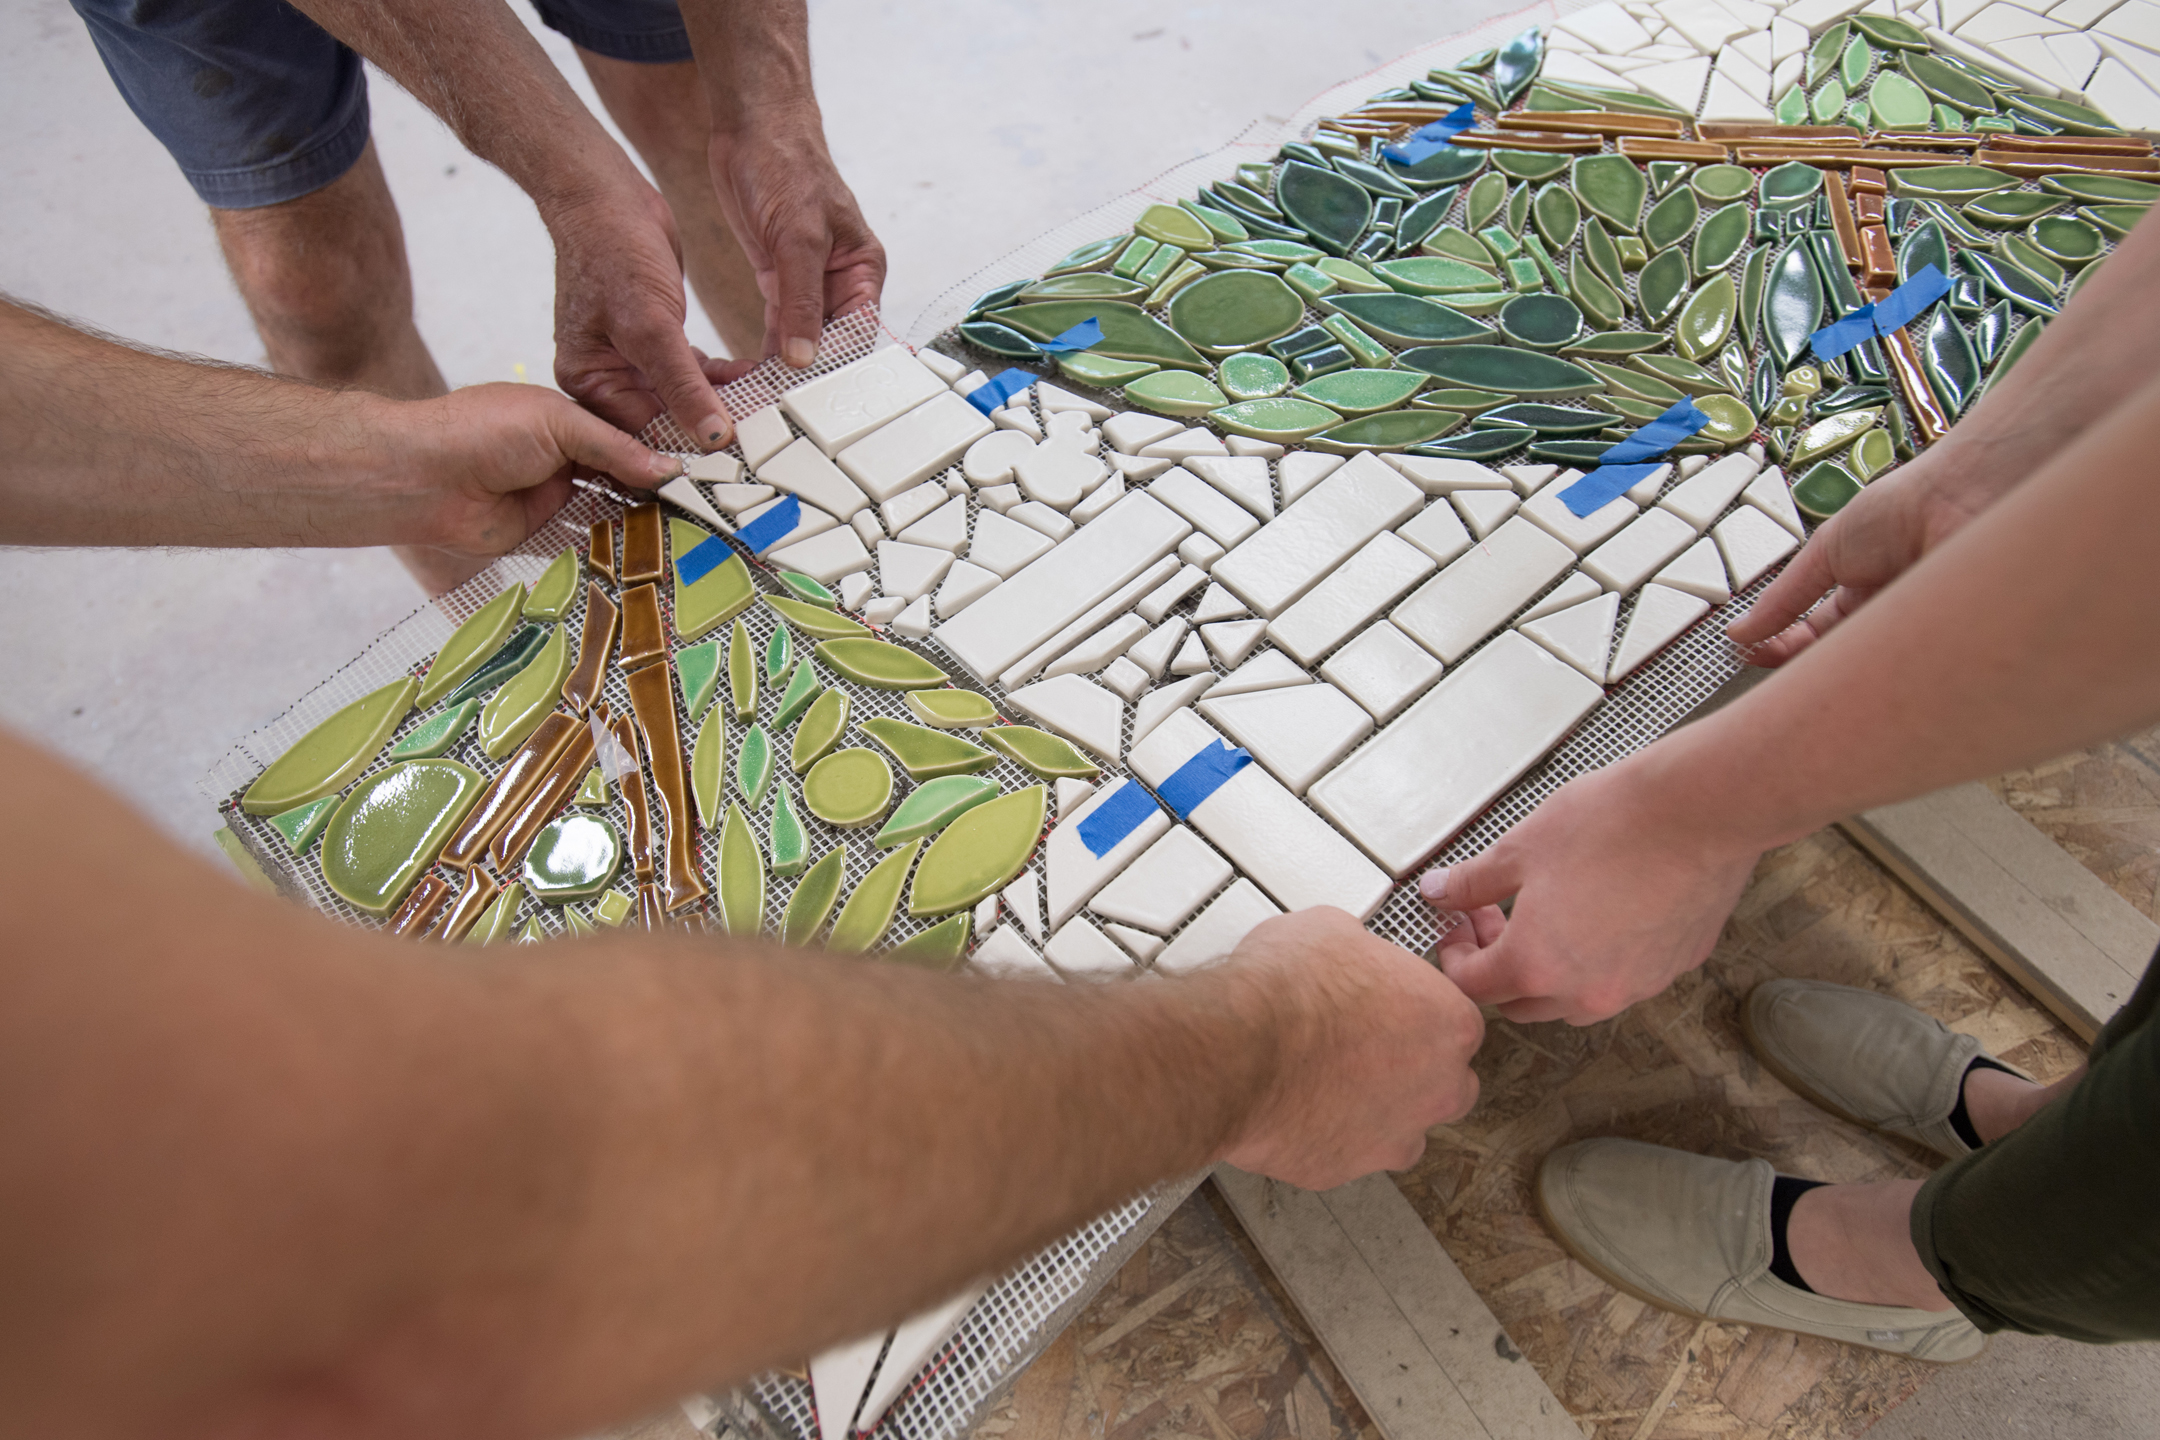 Because the mosaic had to be cut into sections so that it could be lifted and placed on the bench, blue painters' tape was used as registration marks so that each piece could be aligned correctly.  Photo by Michael Spooneybarger